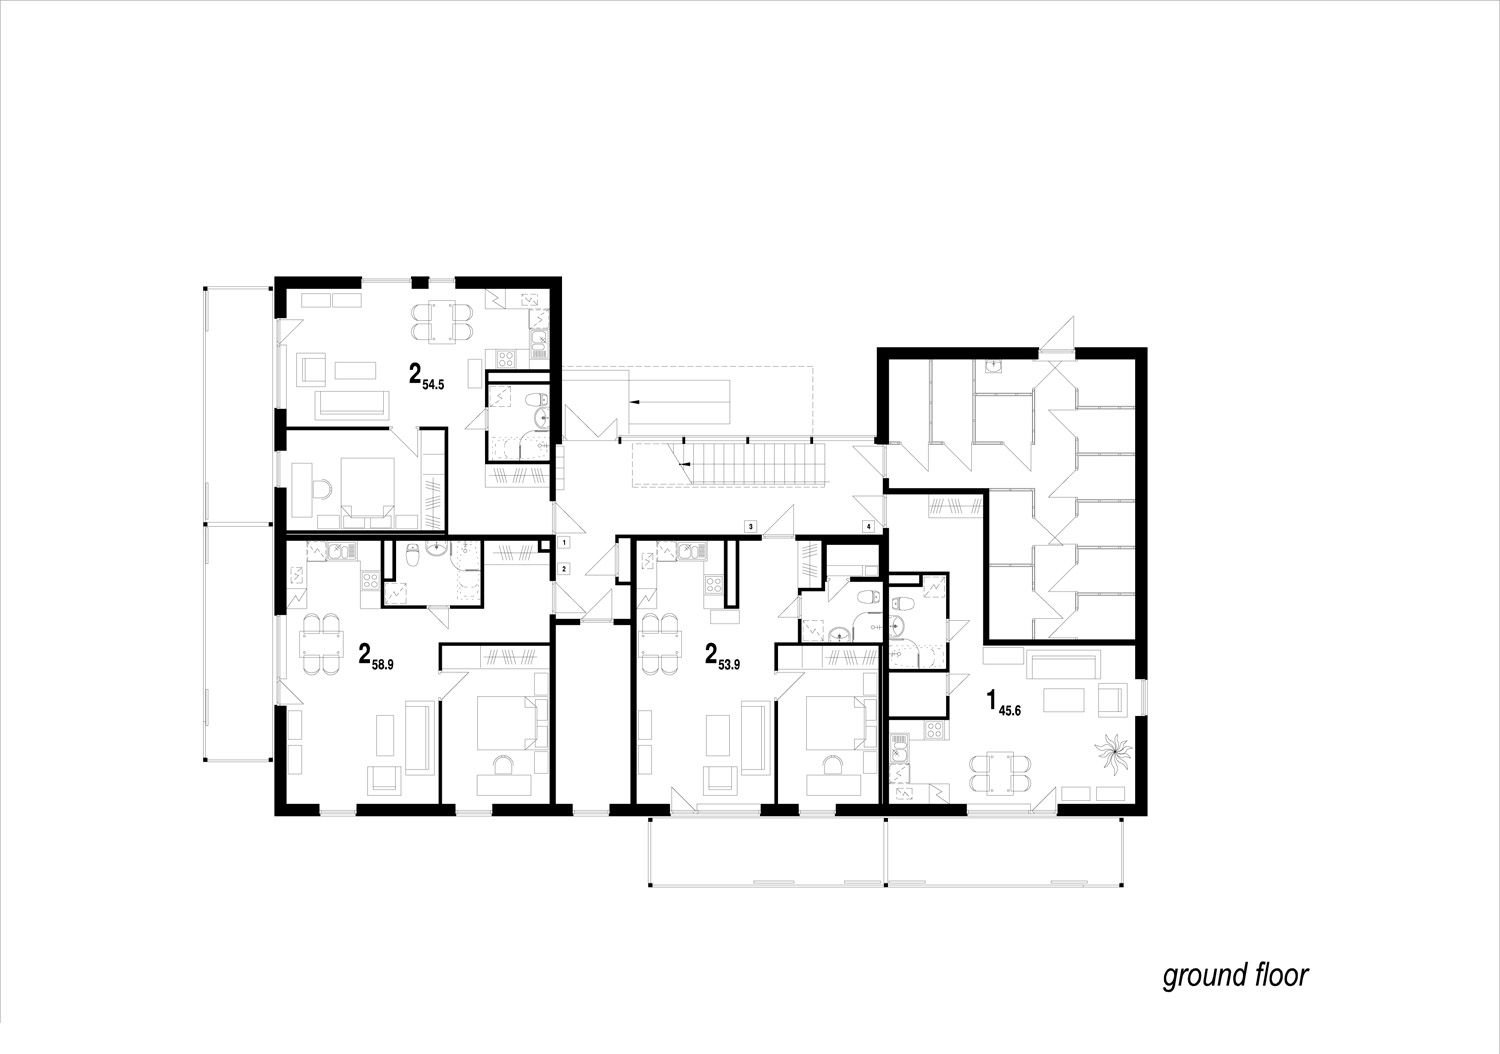 6 residential houses in pahkli street jvr Ground floor house plan